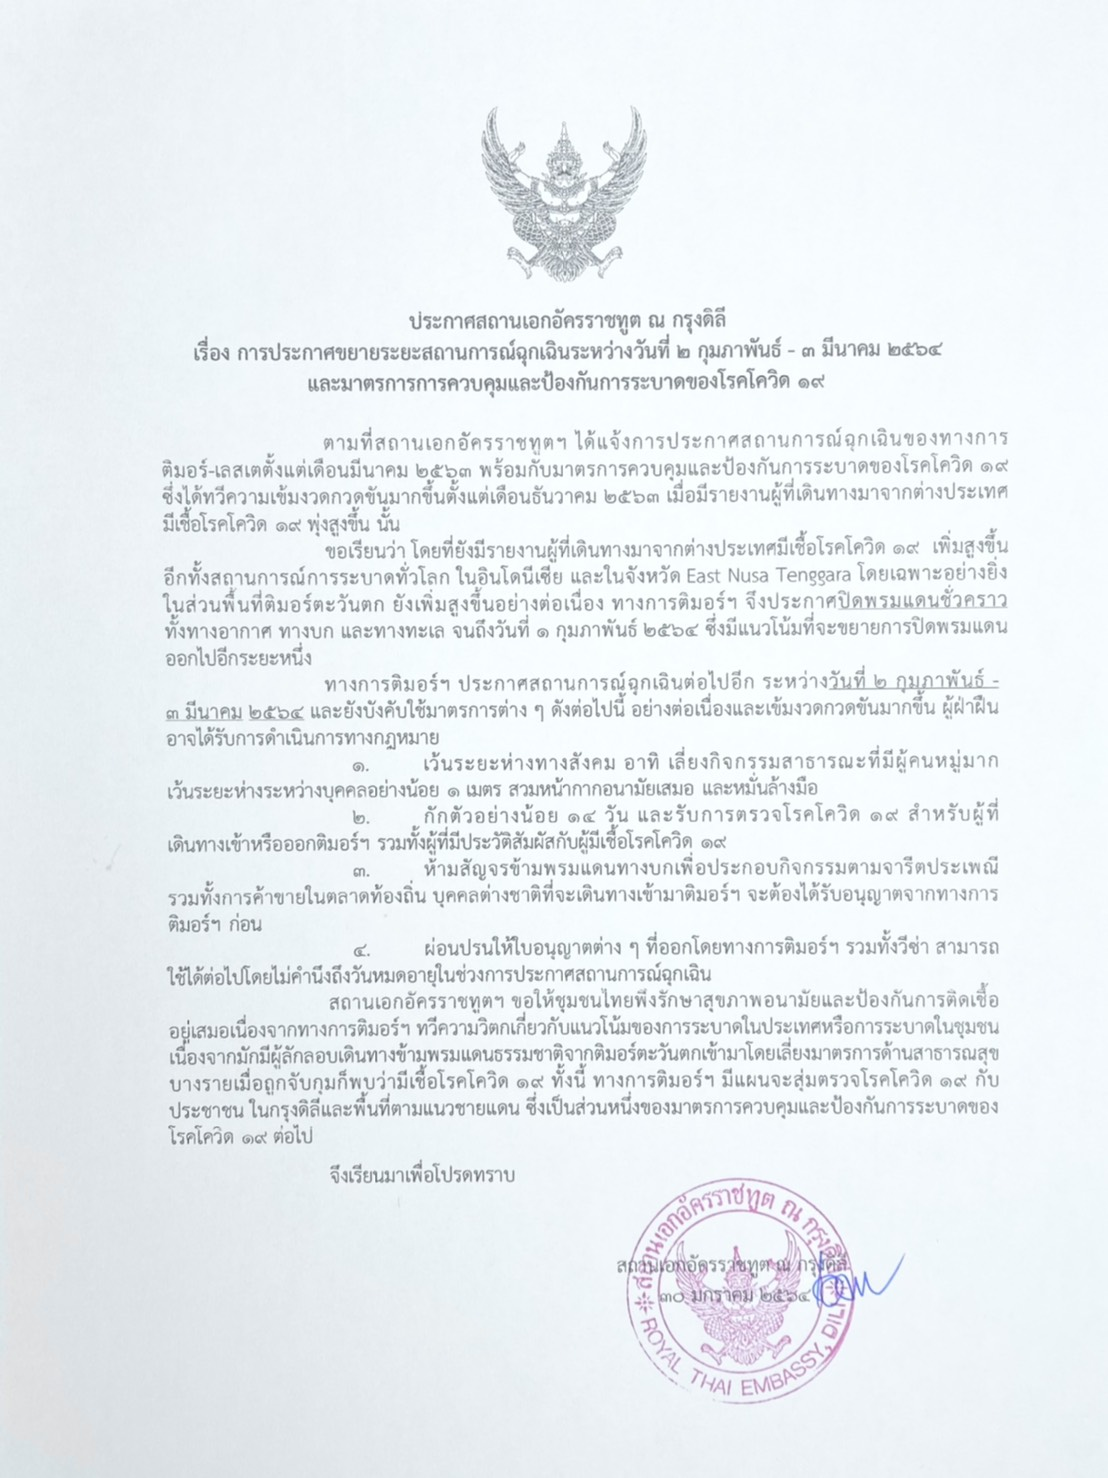 2021-01-29_Annoucement_on_Extension_State_of_Emergency_in_TL